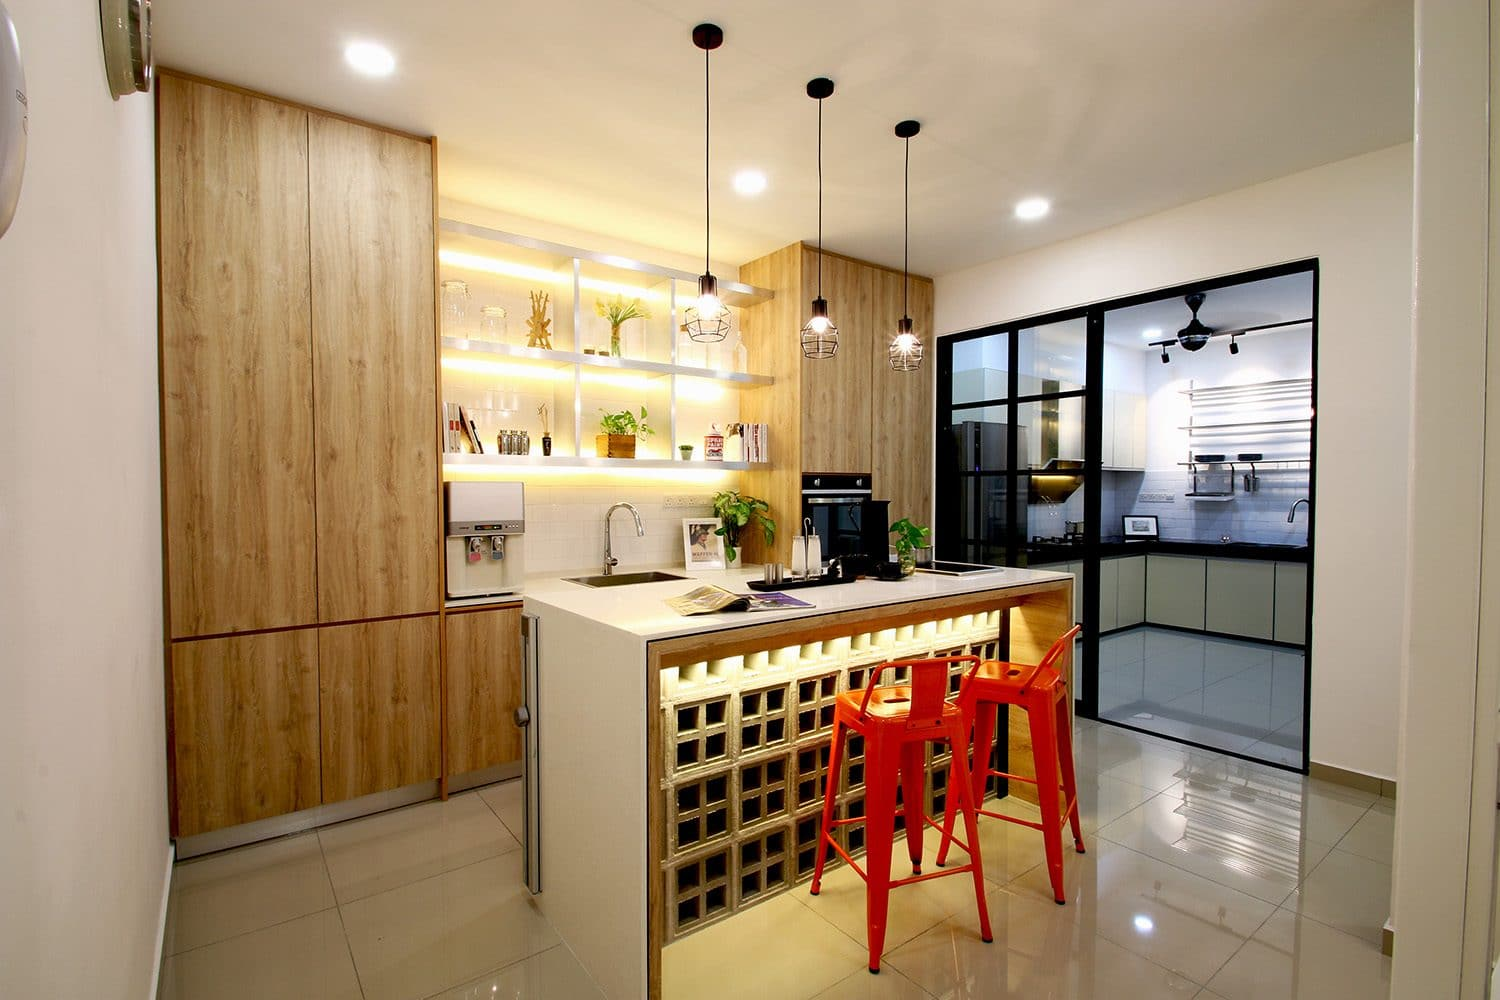 14 Wet and Dry Kitchen Design Ideas in Malaysian Homes